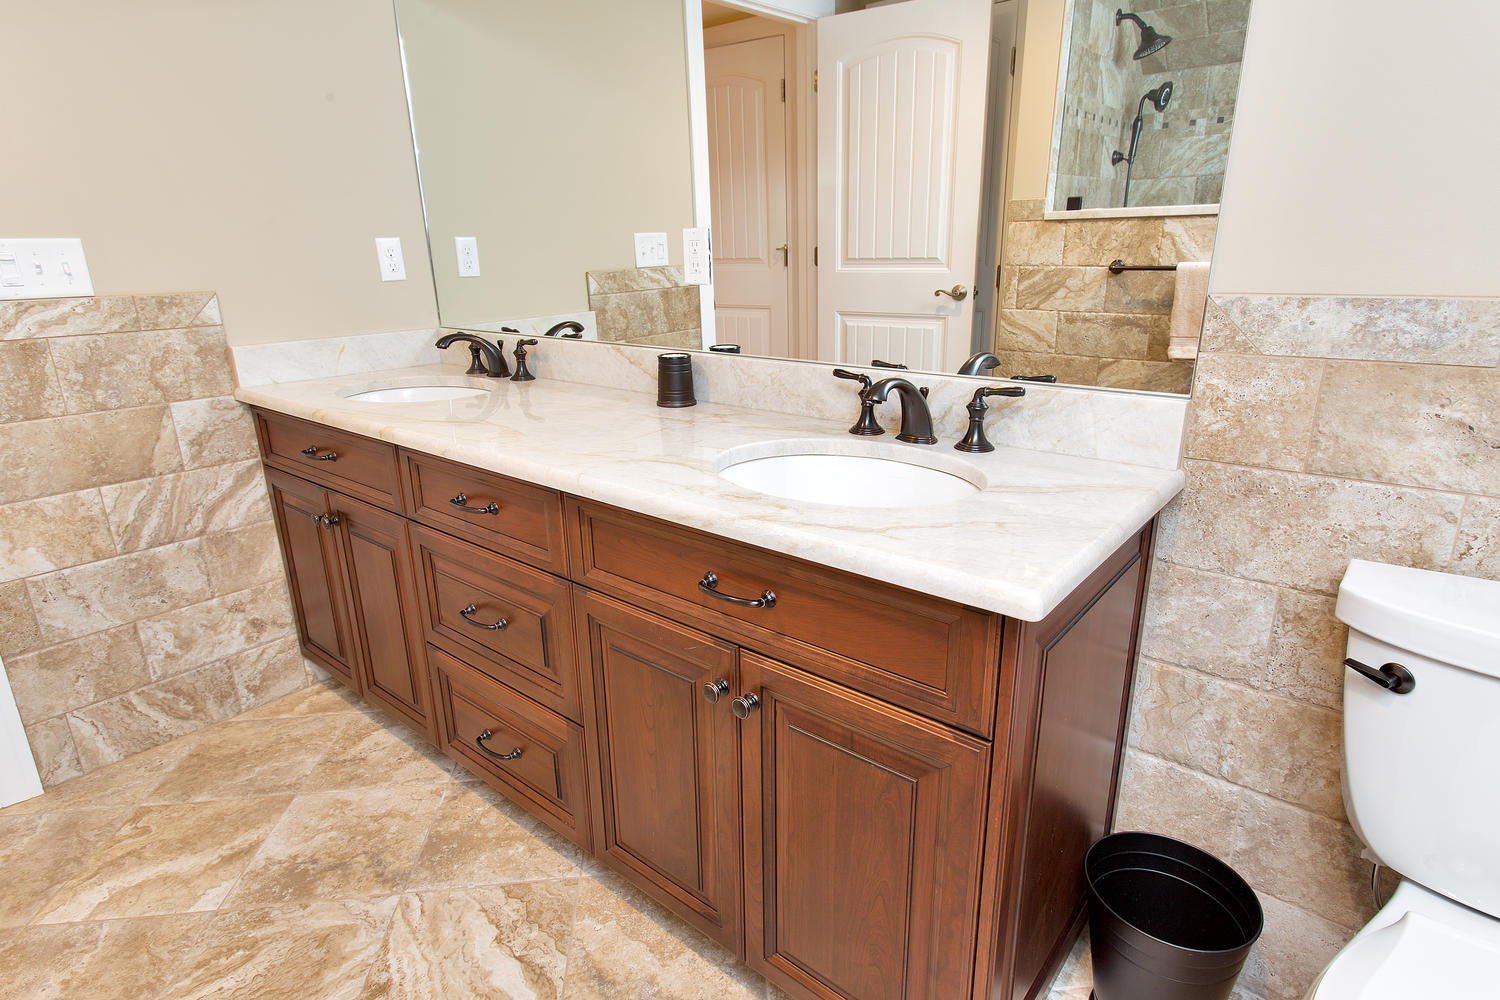 Bathroom Vanities East Brunswick Nj custom vanity / bathroom cabinetry | design line kitchens in sea